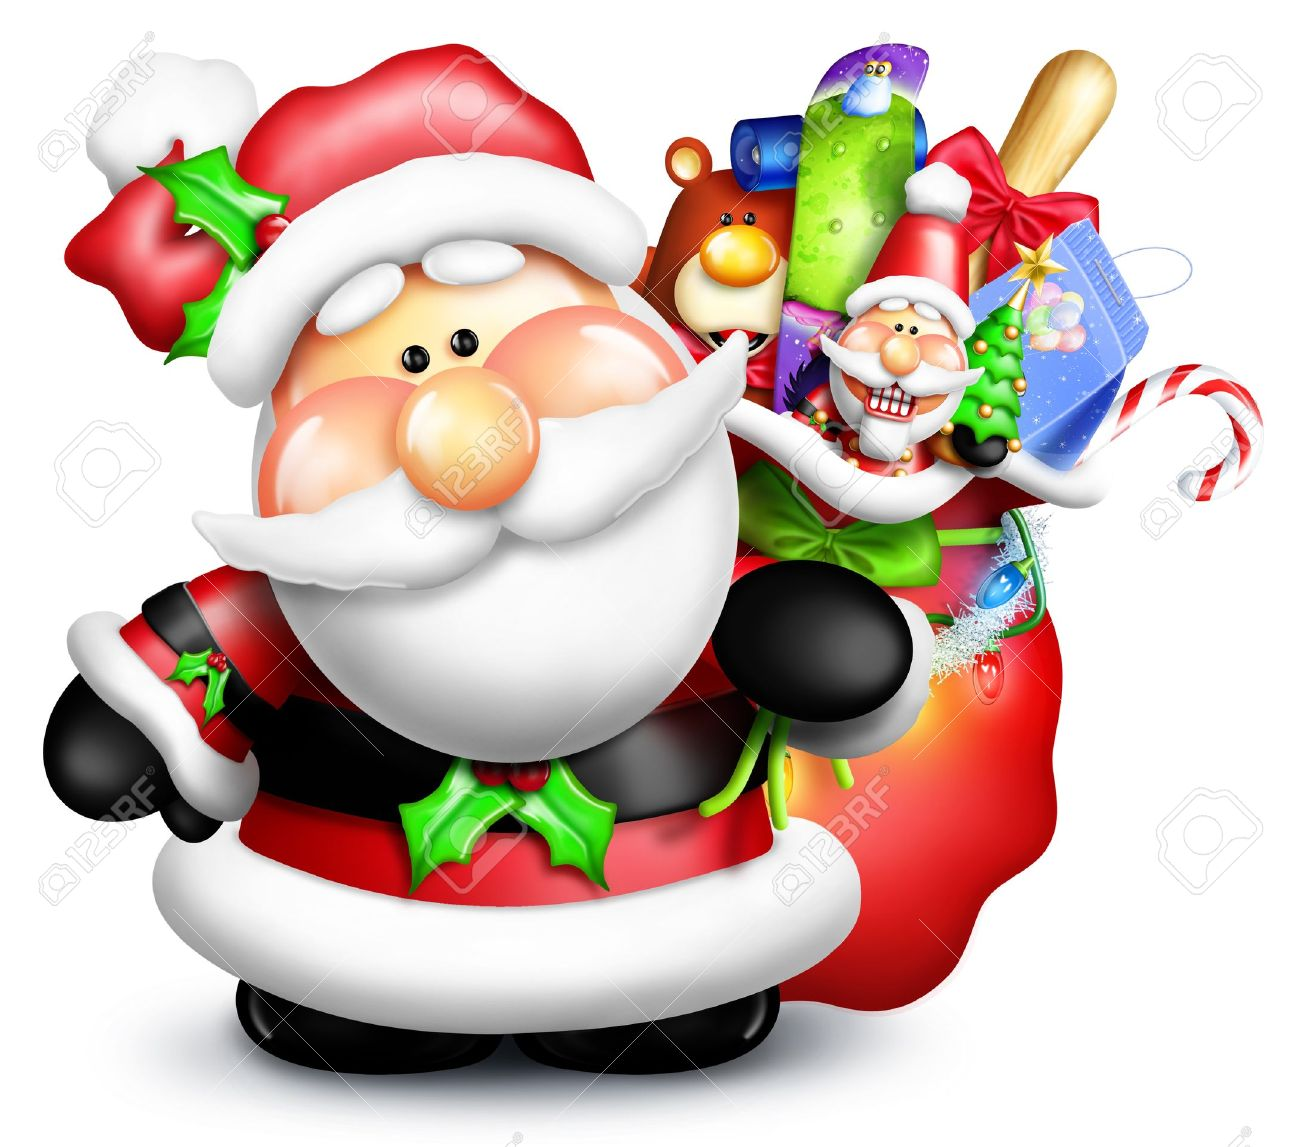 Whimsical Cartoon Santa with Gift Bag and Toys Stock Photo - 14963846